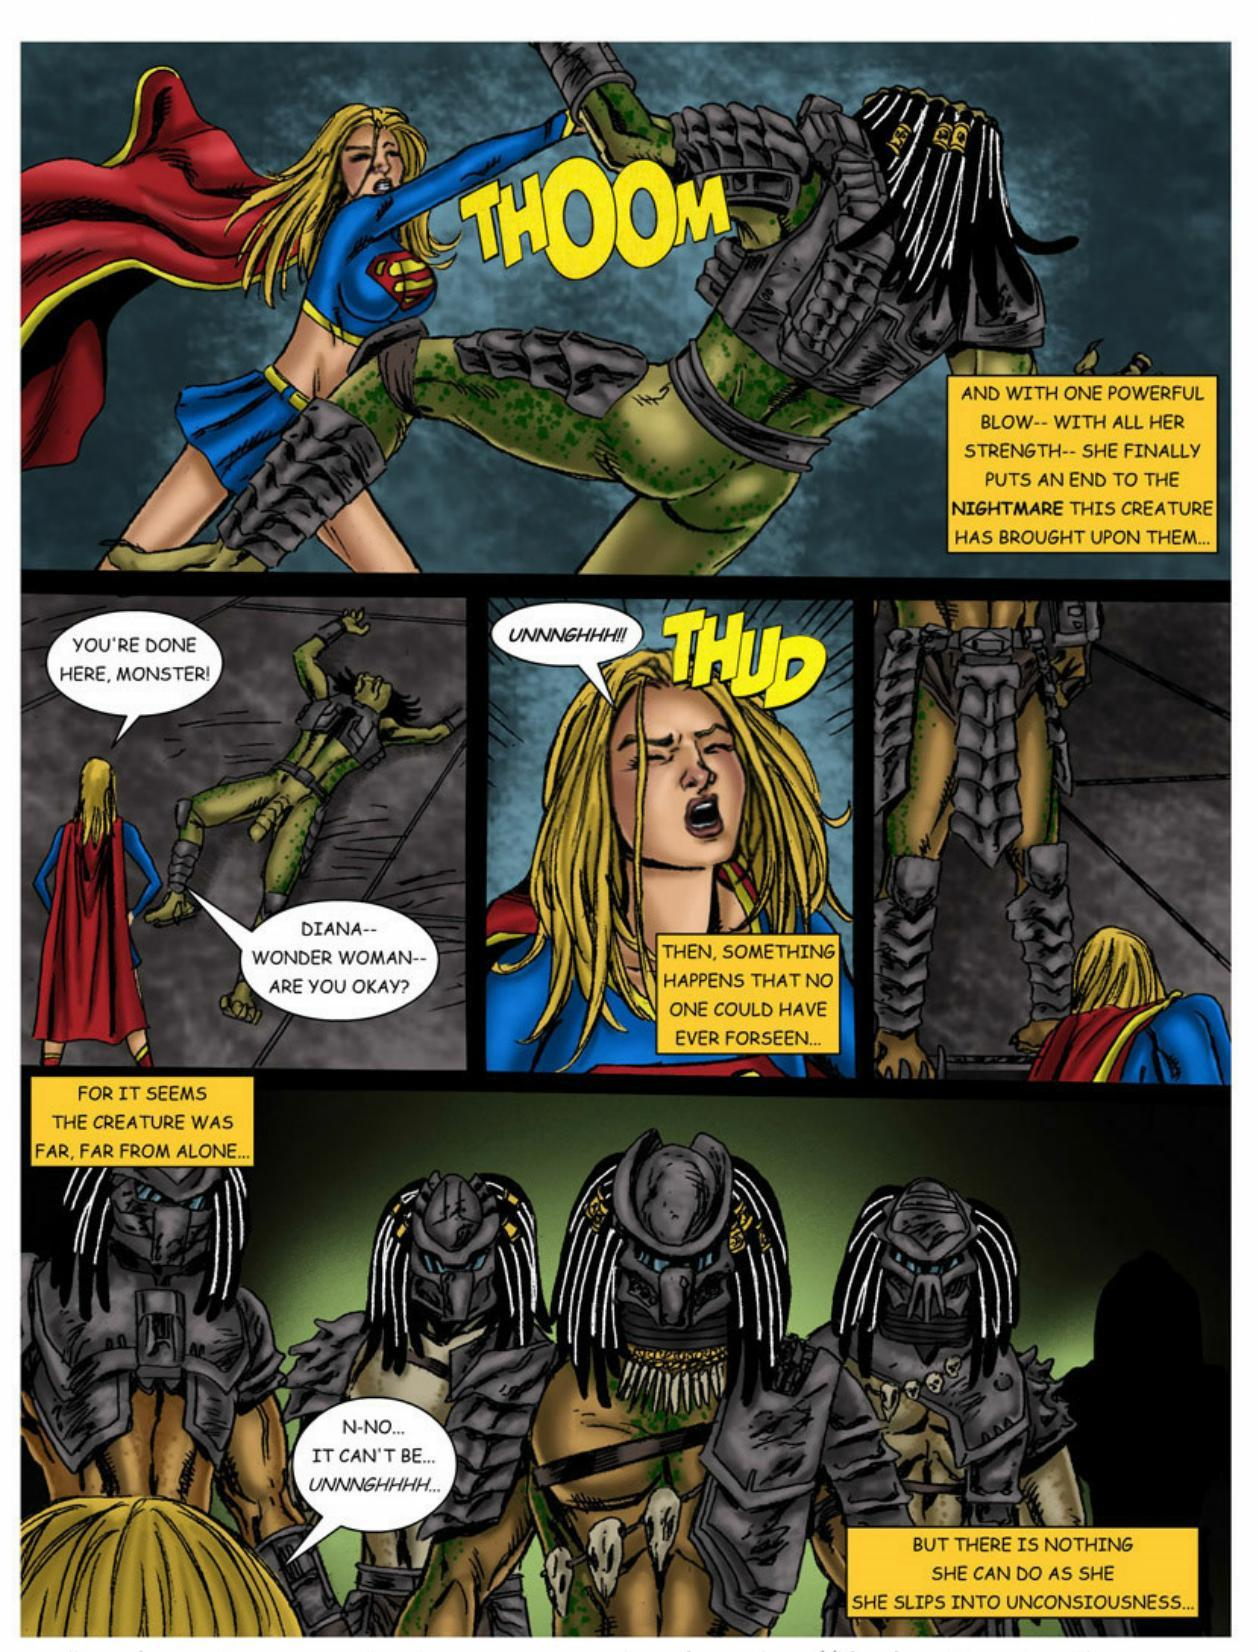 Wonder Woman vs Predator – Part 1-374 free sex comic